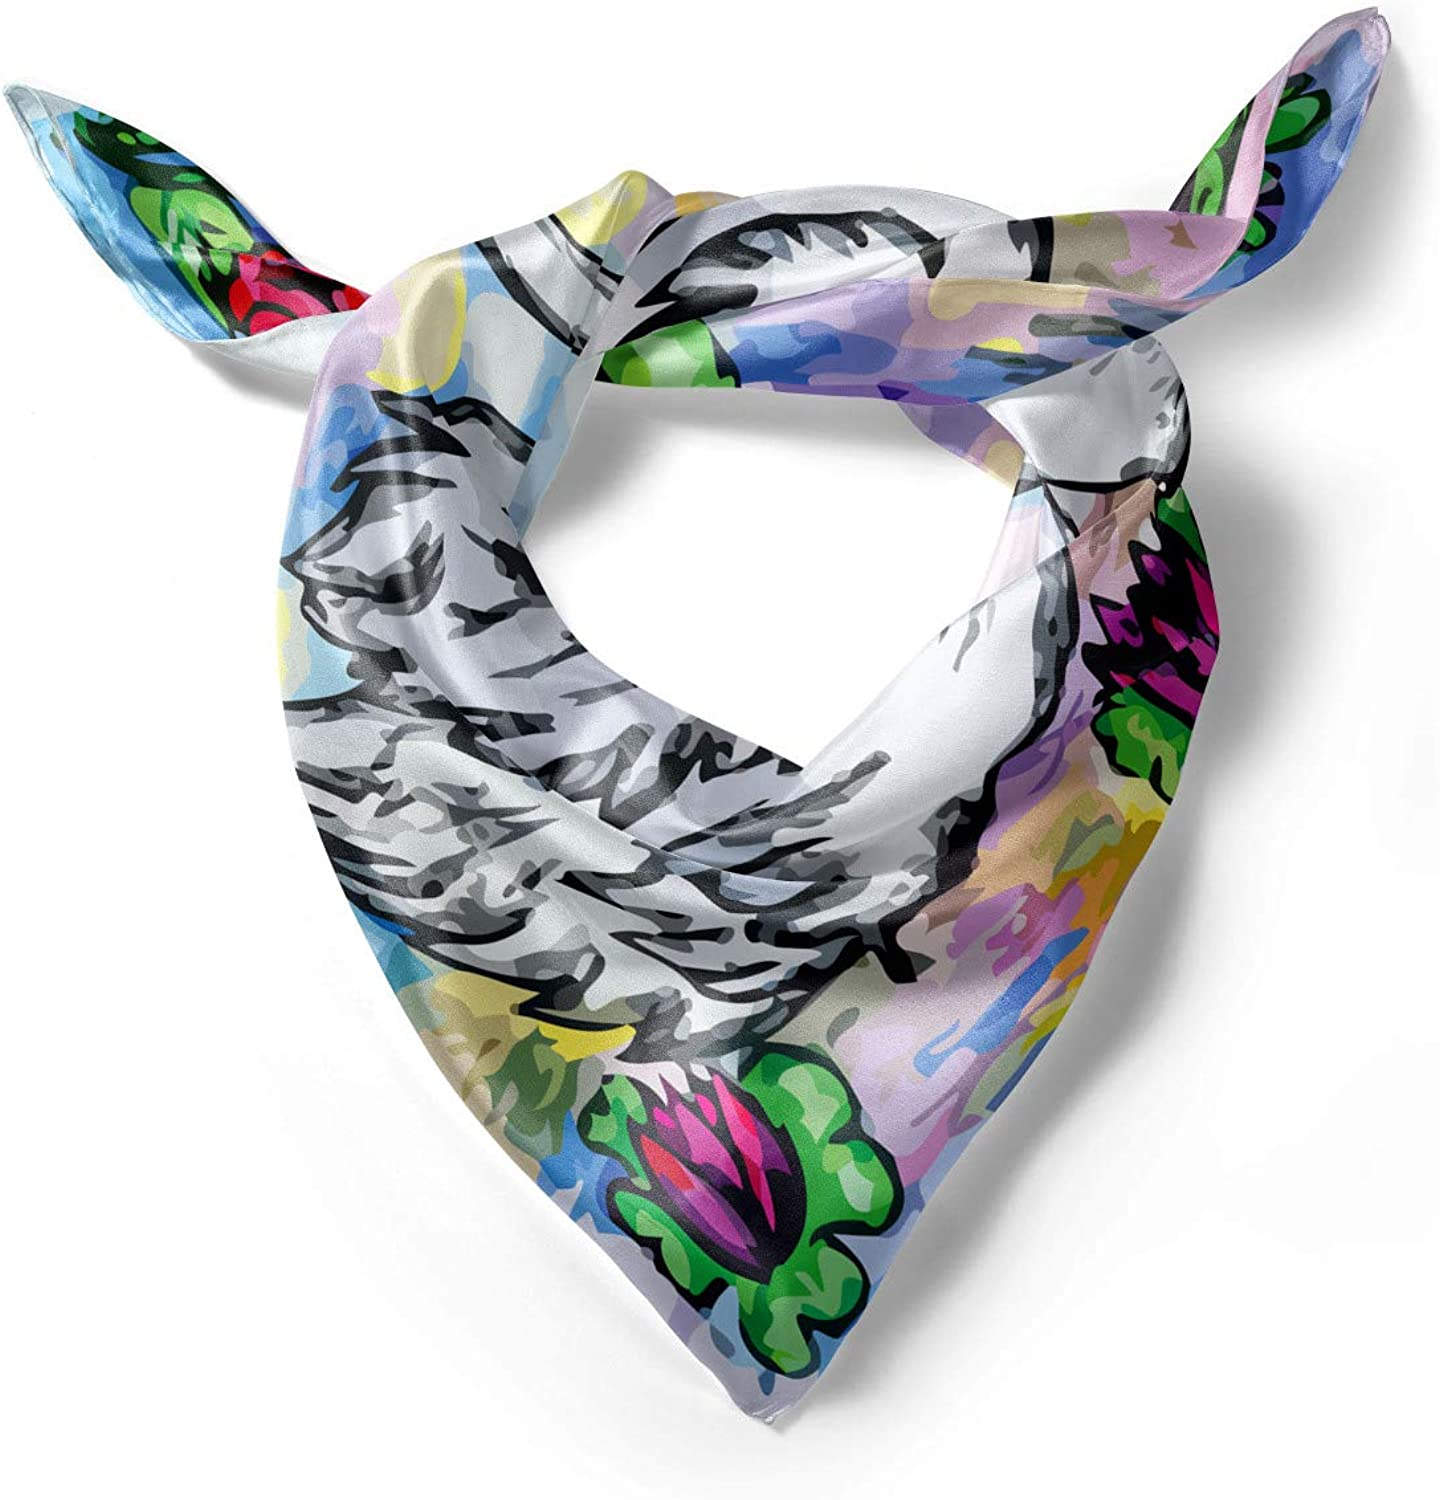 Hair Wrap 2 White Swans in Lake Ambesonne Floral Head Scarf